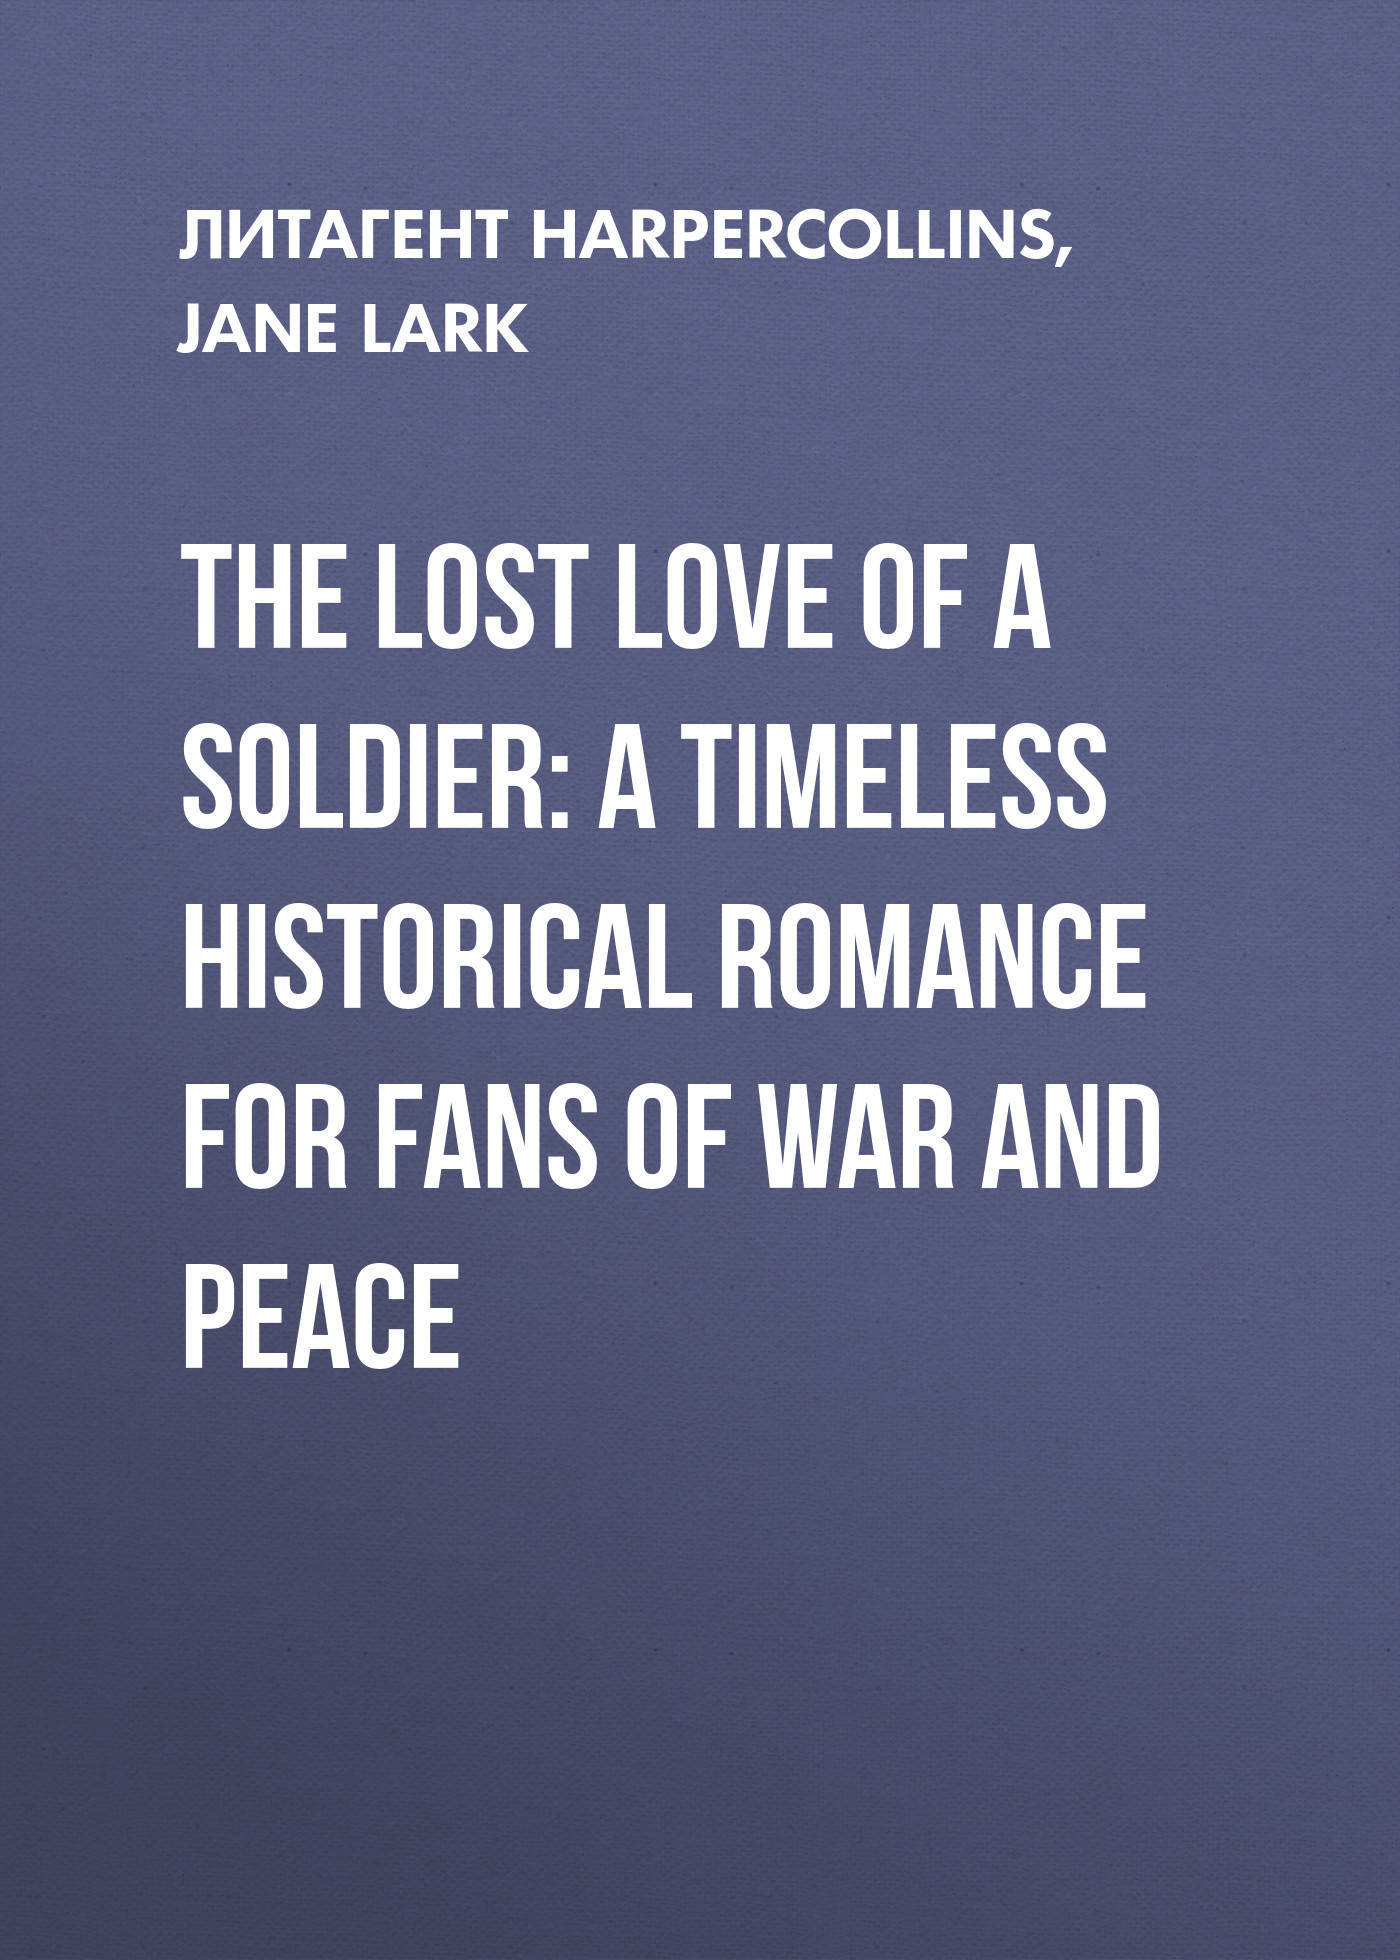 Jane Lark The Lost Love of a Soldier: A timeless Historical romance for fans of War and Peace in peace and war